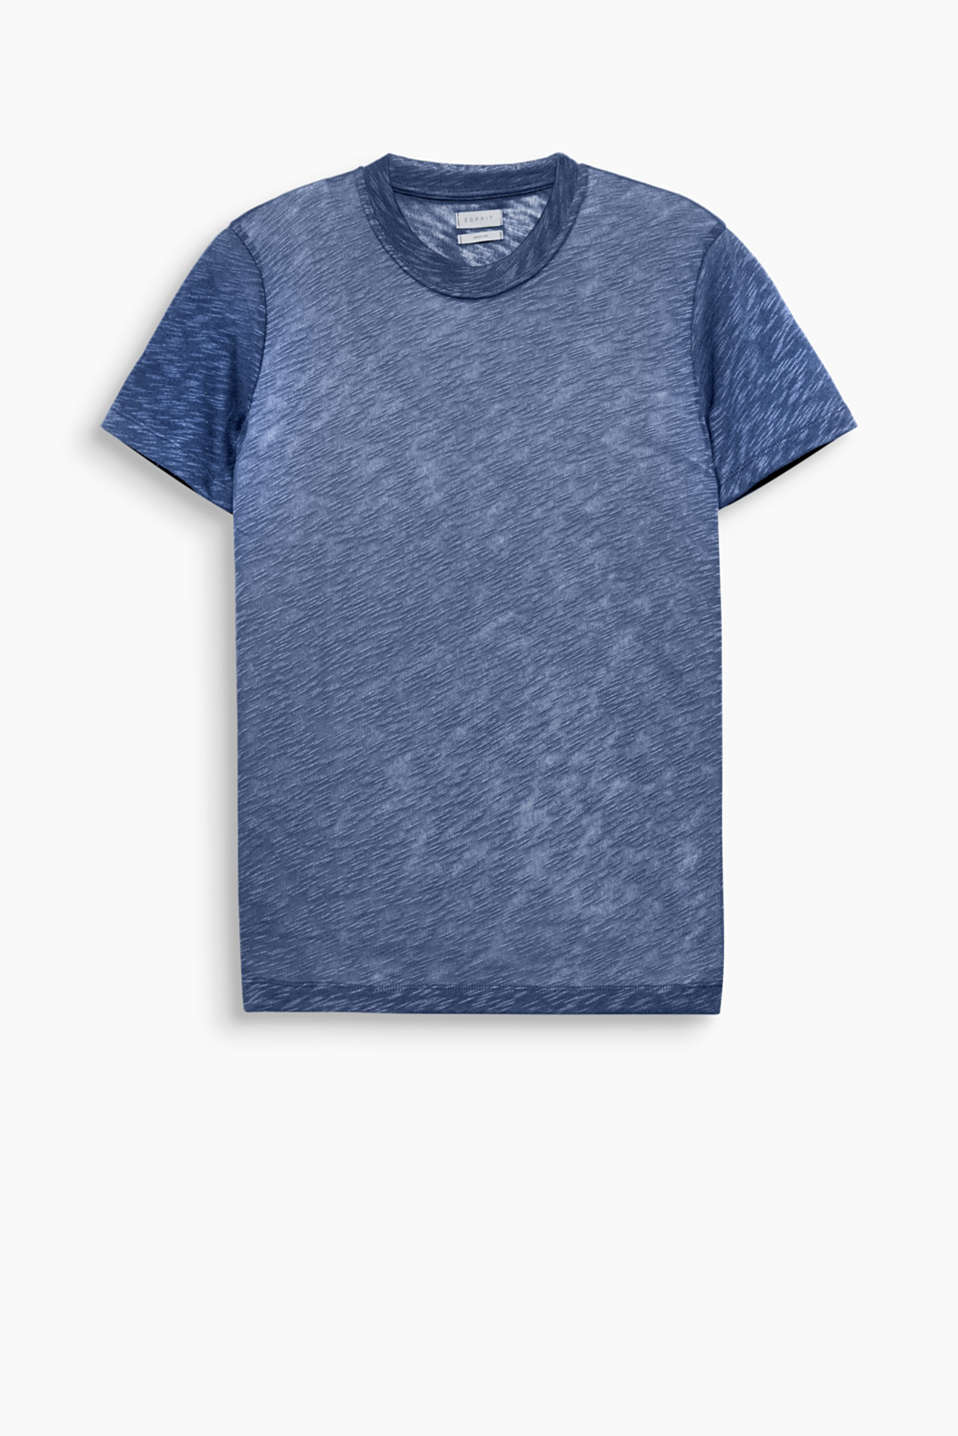 The wide round neckline and slub texture make this loosely cut T-shirt a head-turning piece.